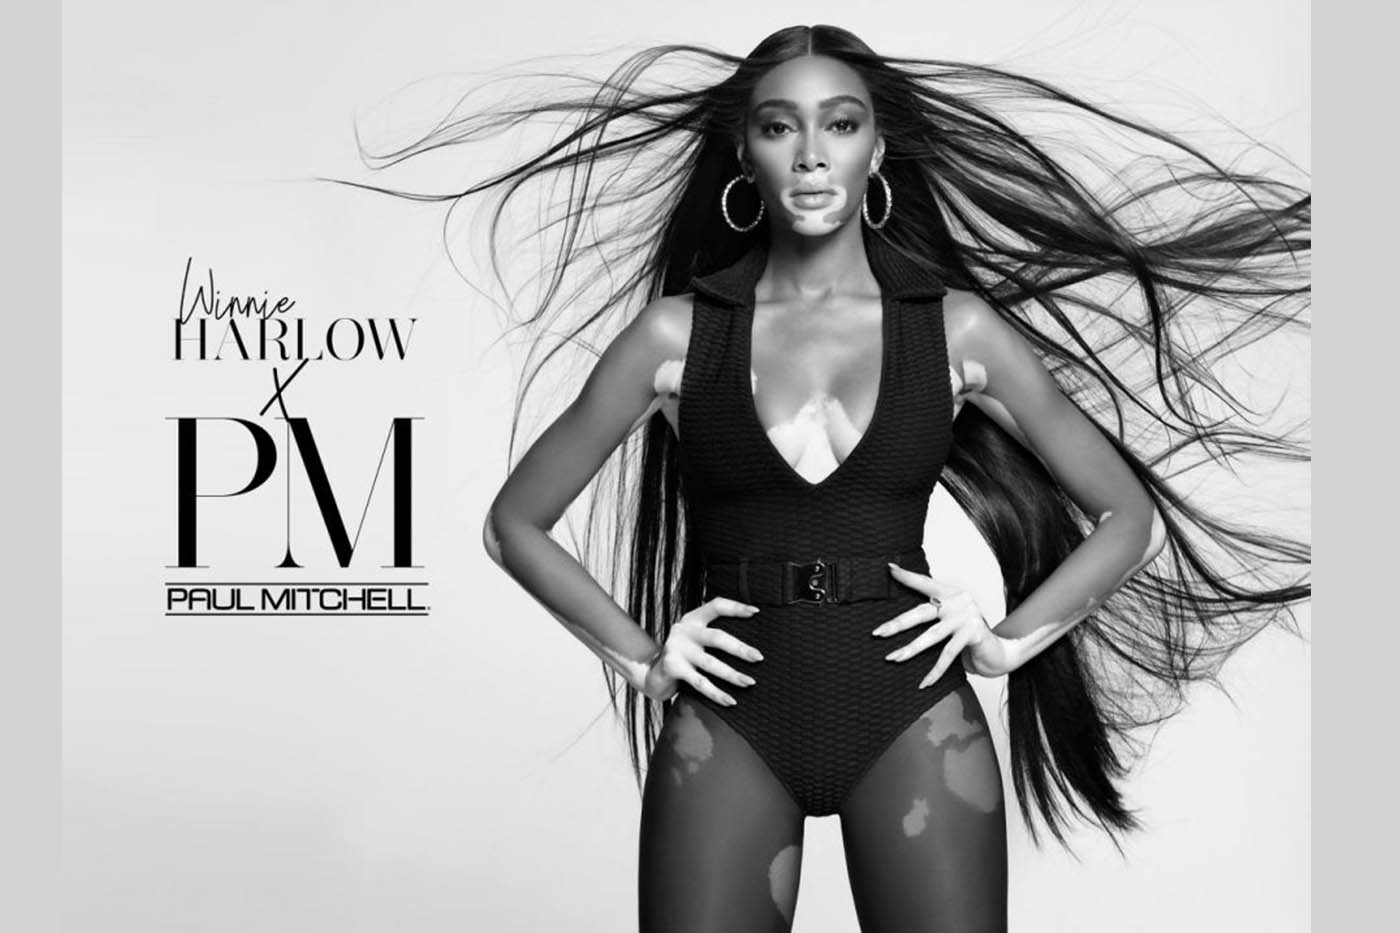 Paul Mitchell chooses Winnie Harlow as Global Brand Ambassador